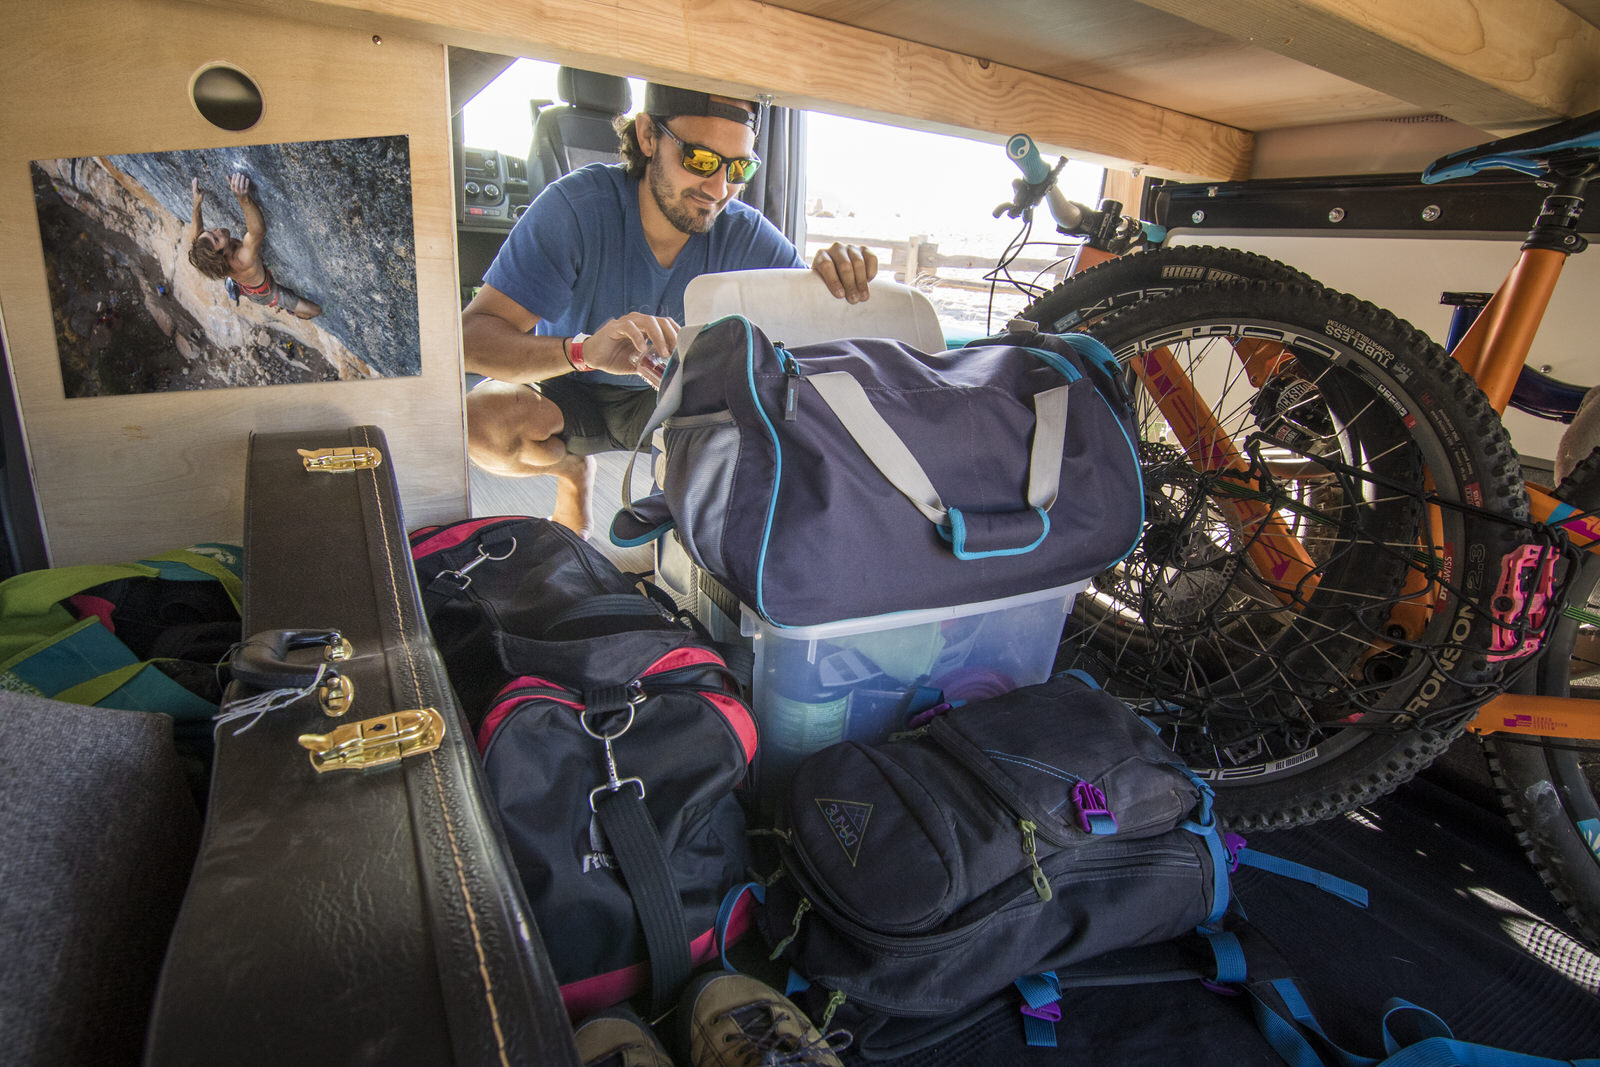 Gear storage under the Wayfarer Van Bed Platform.